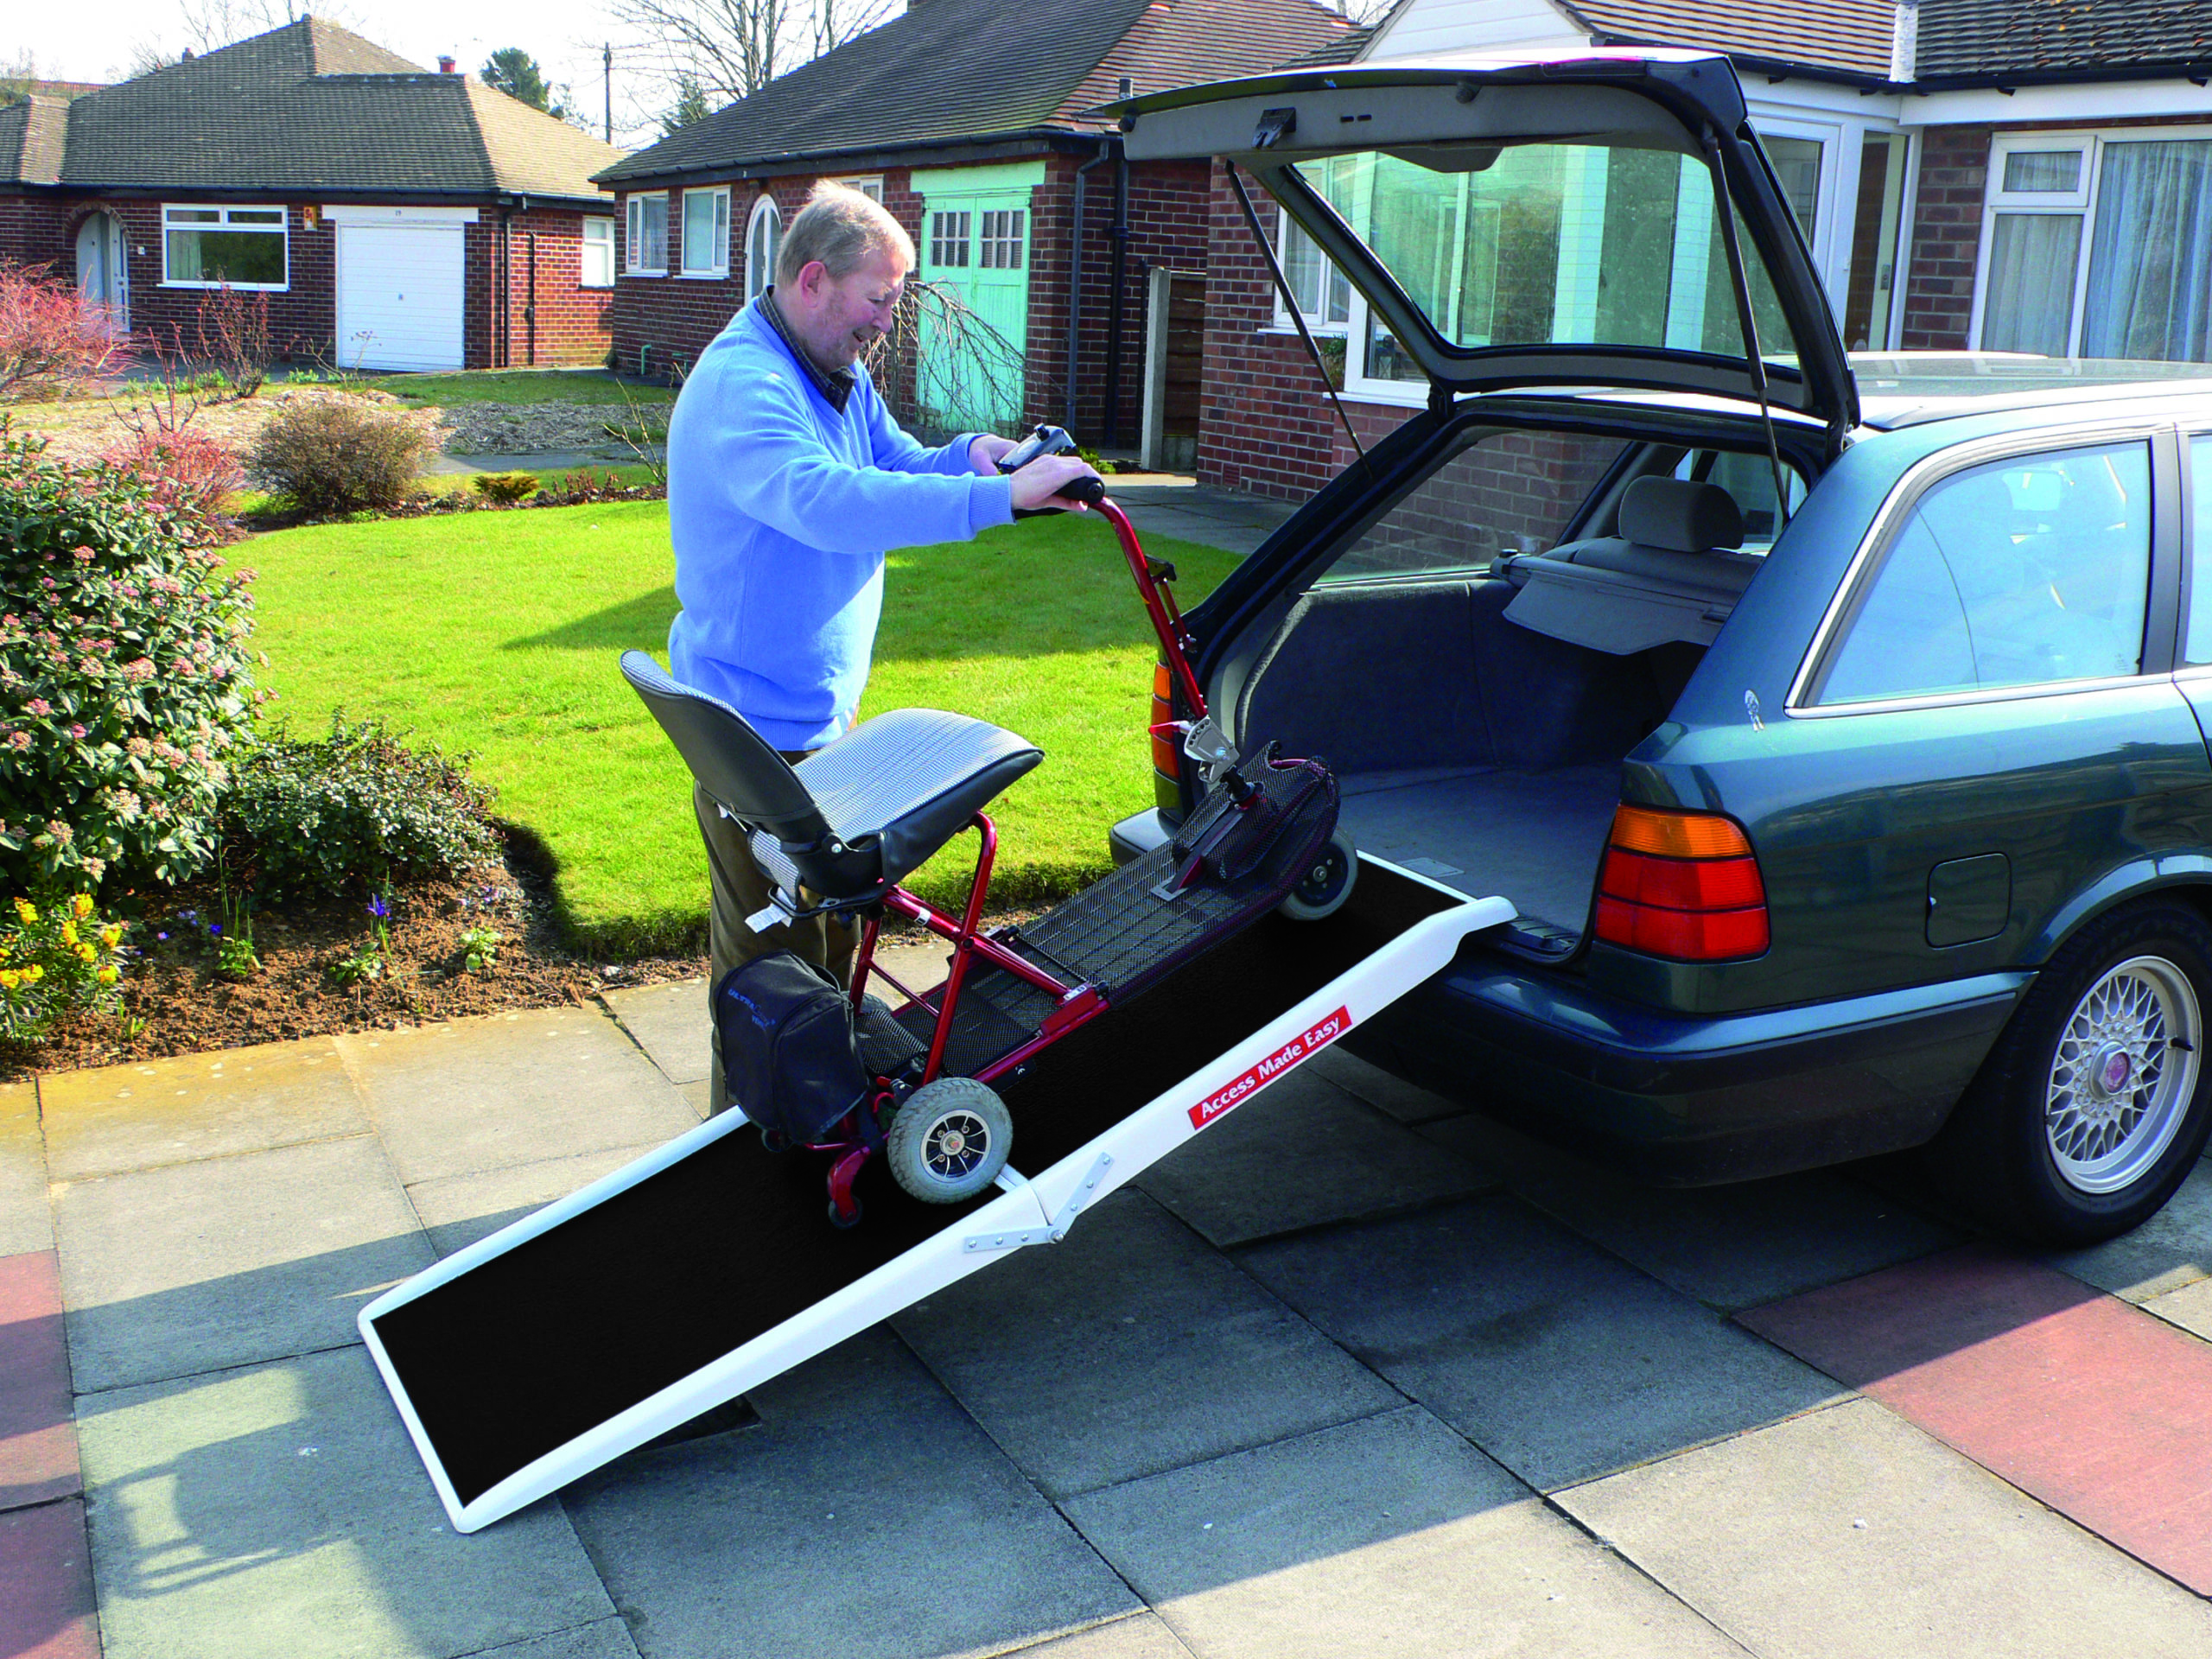 Loading an Electric Conveyance Vehicles into a car with a fibreglass scooter ramp